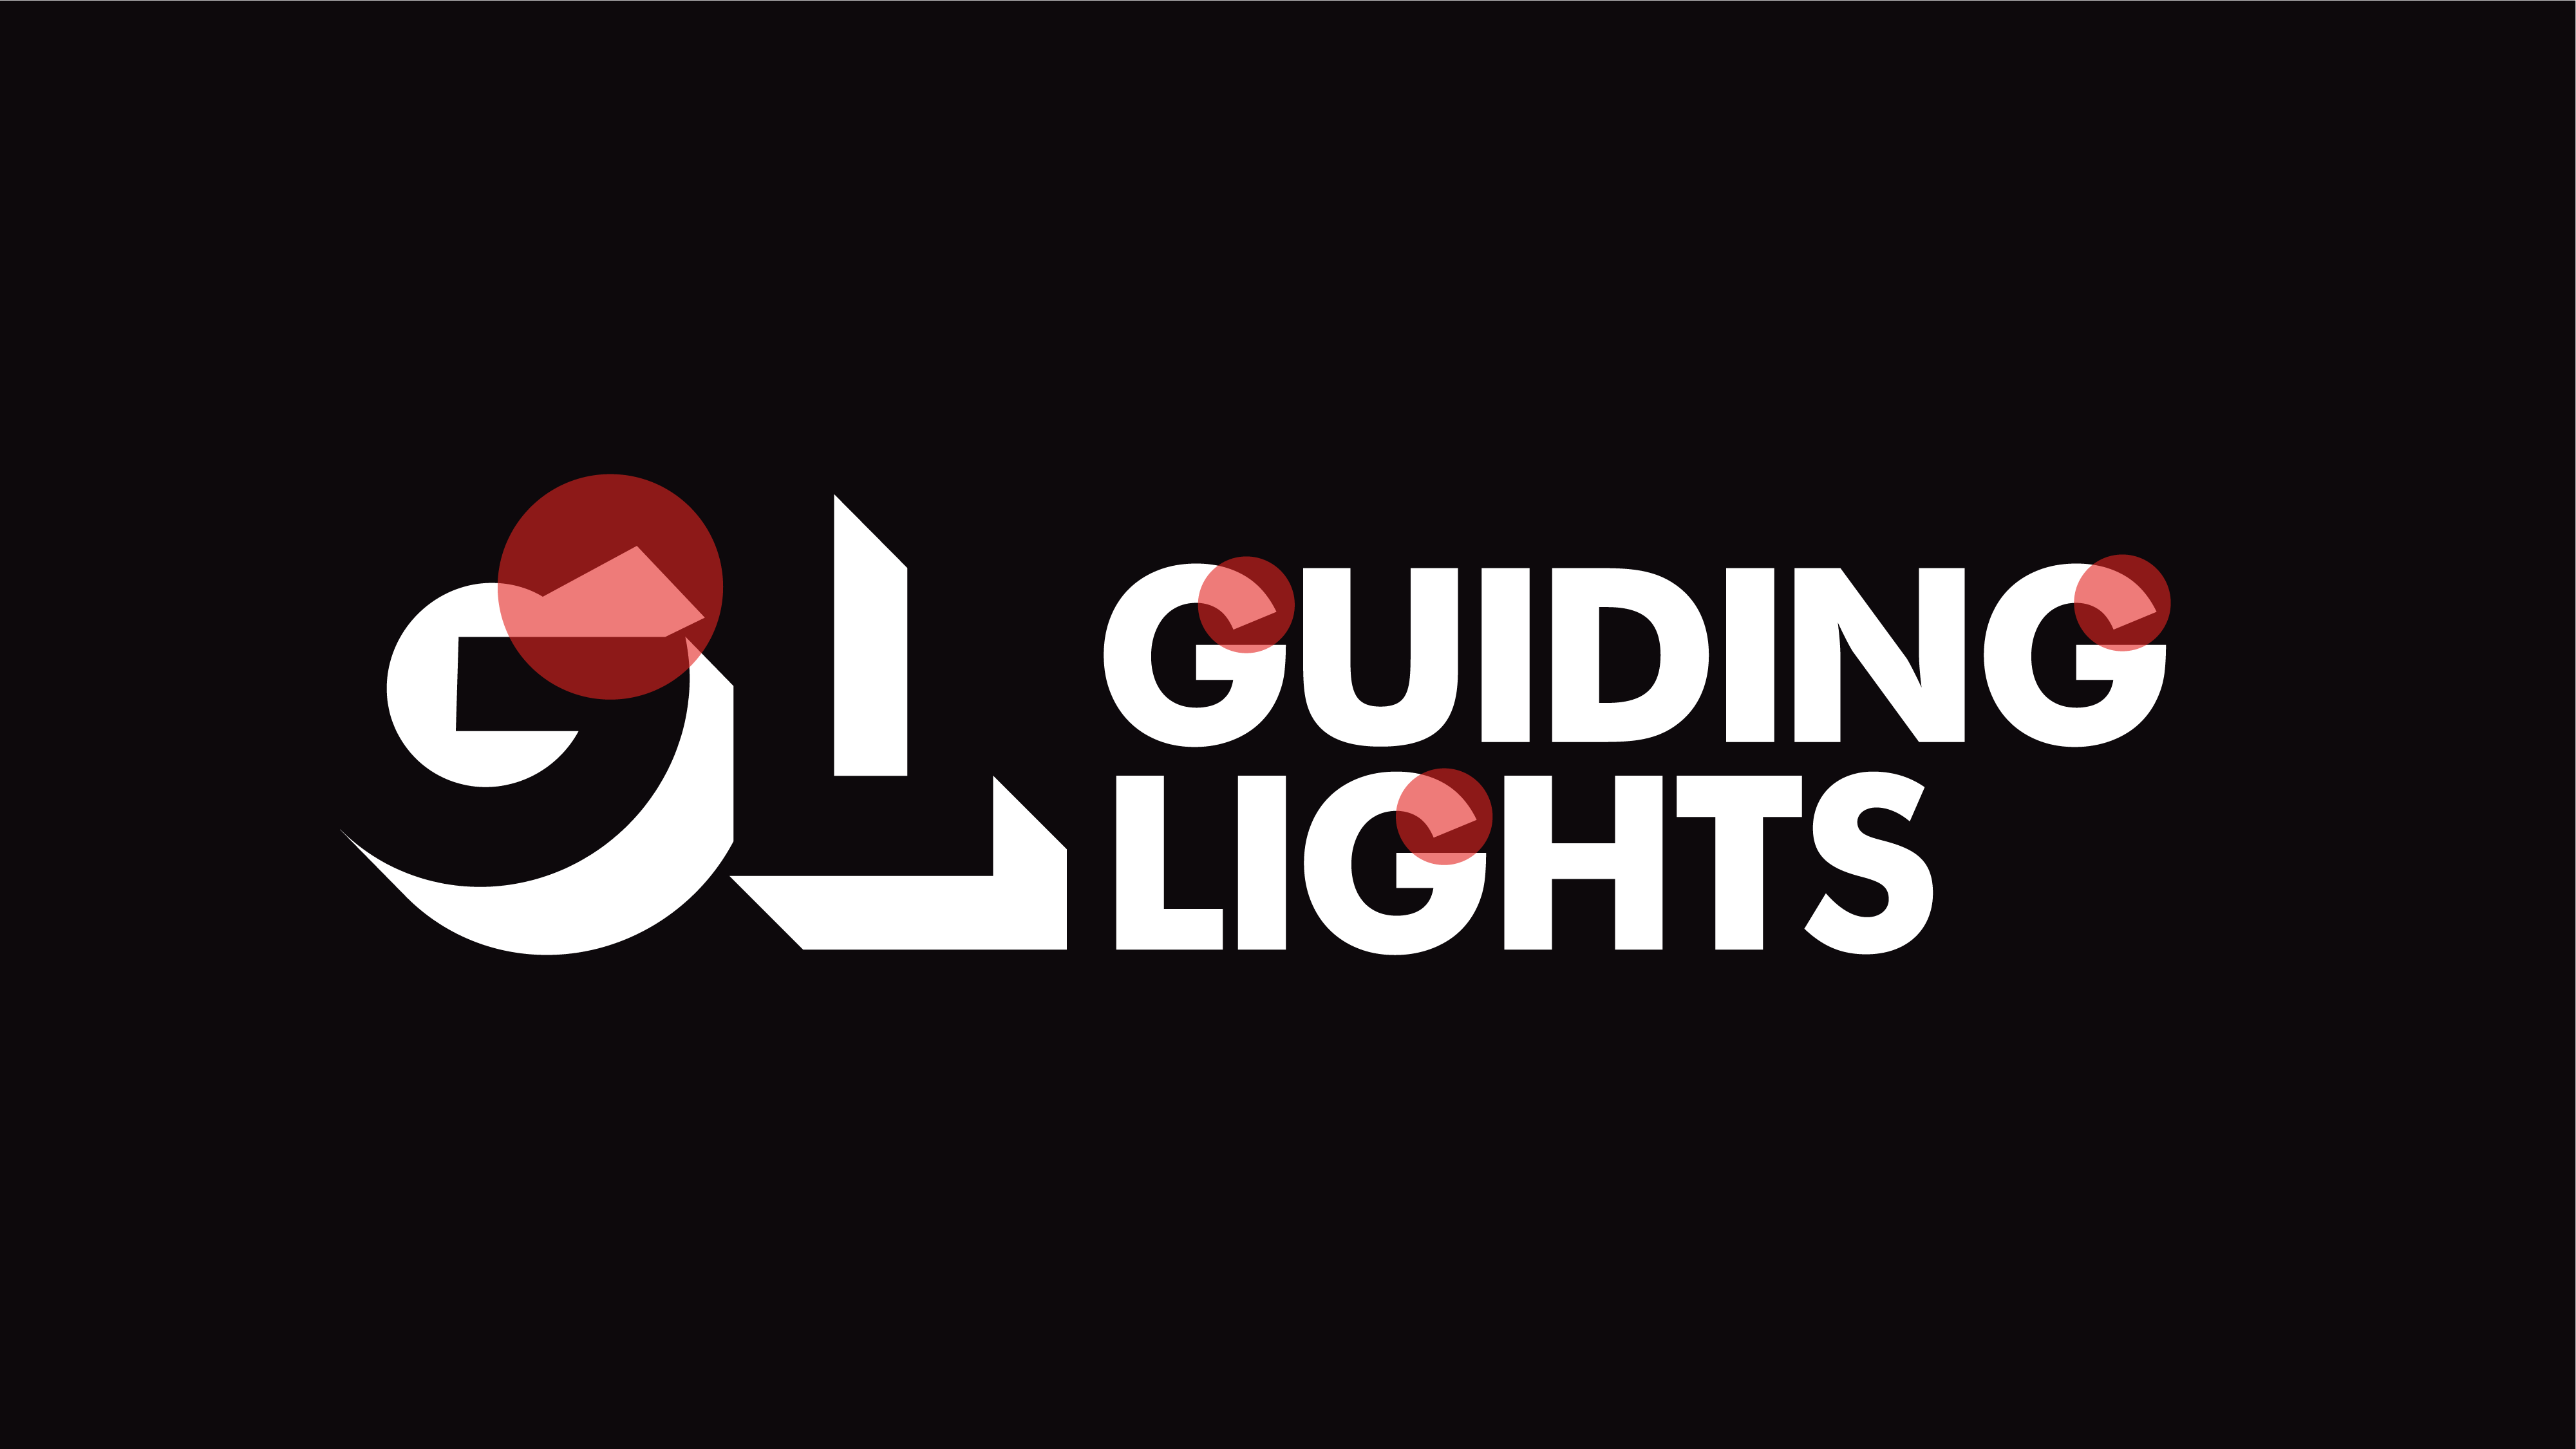 Guiding-Lights-refinement-04